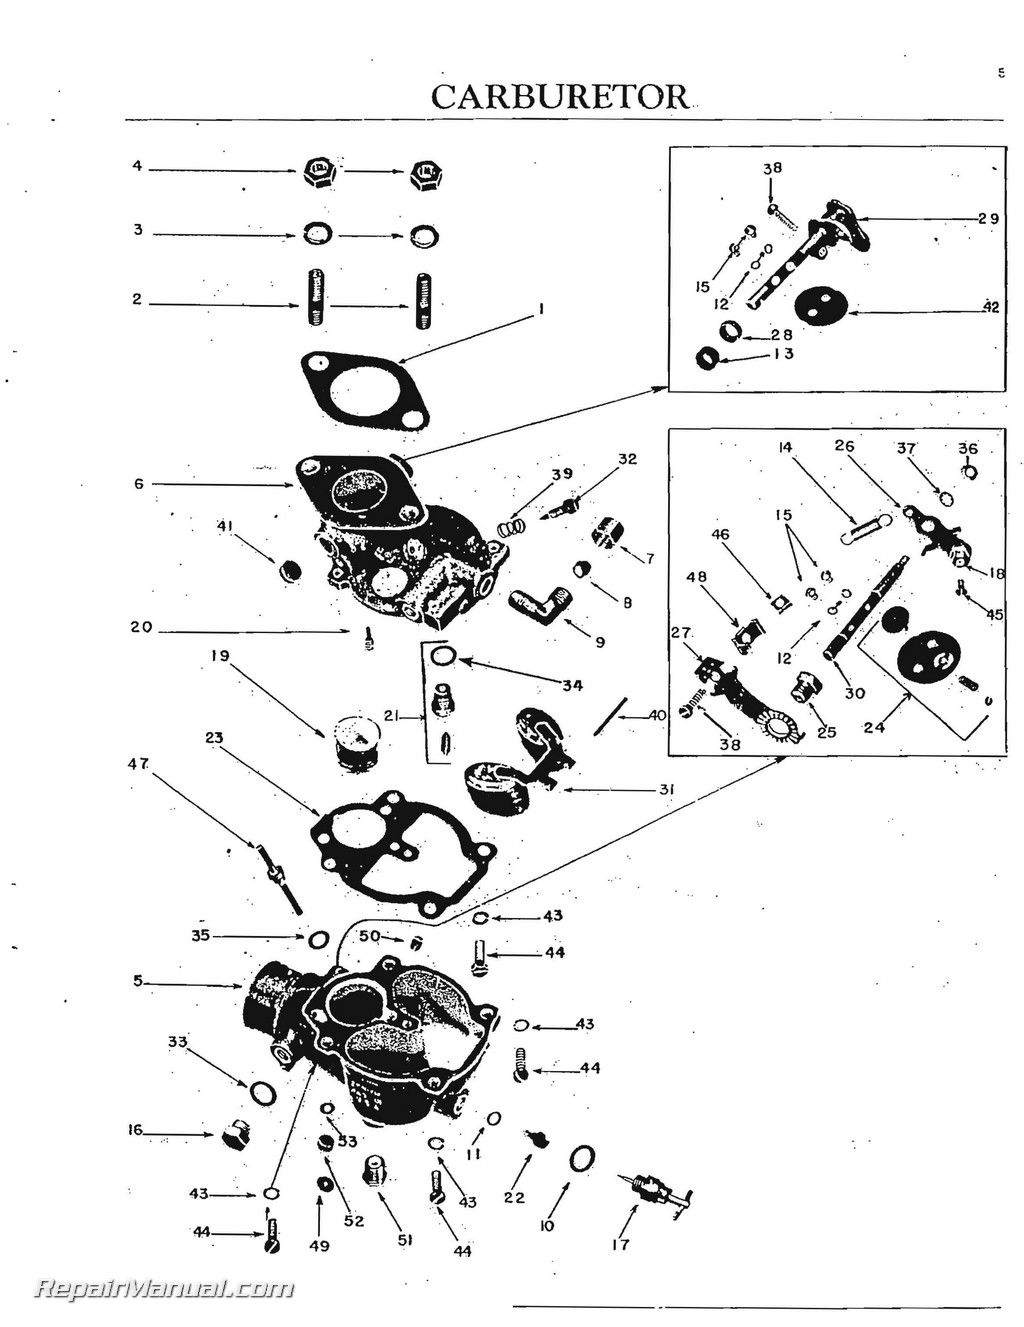 Wiring Diagrams For 1959 880 Oliver | Online Wiring Diagram on